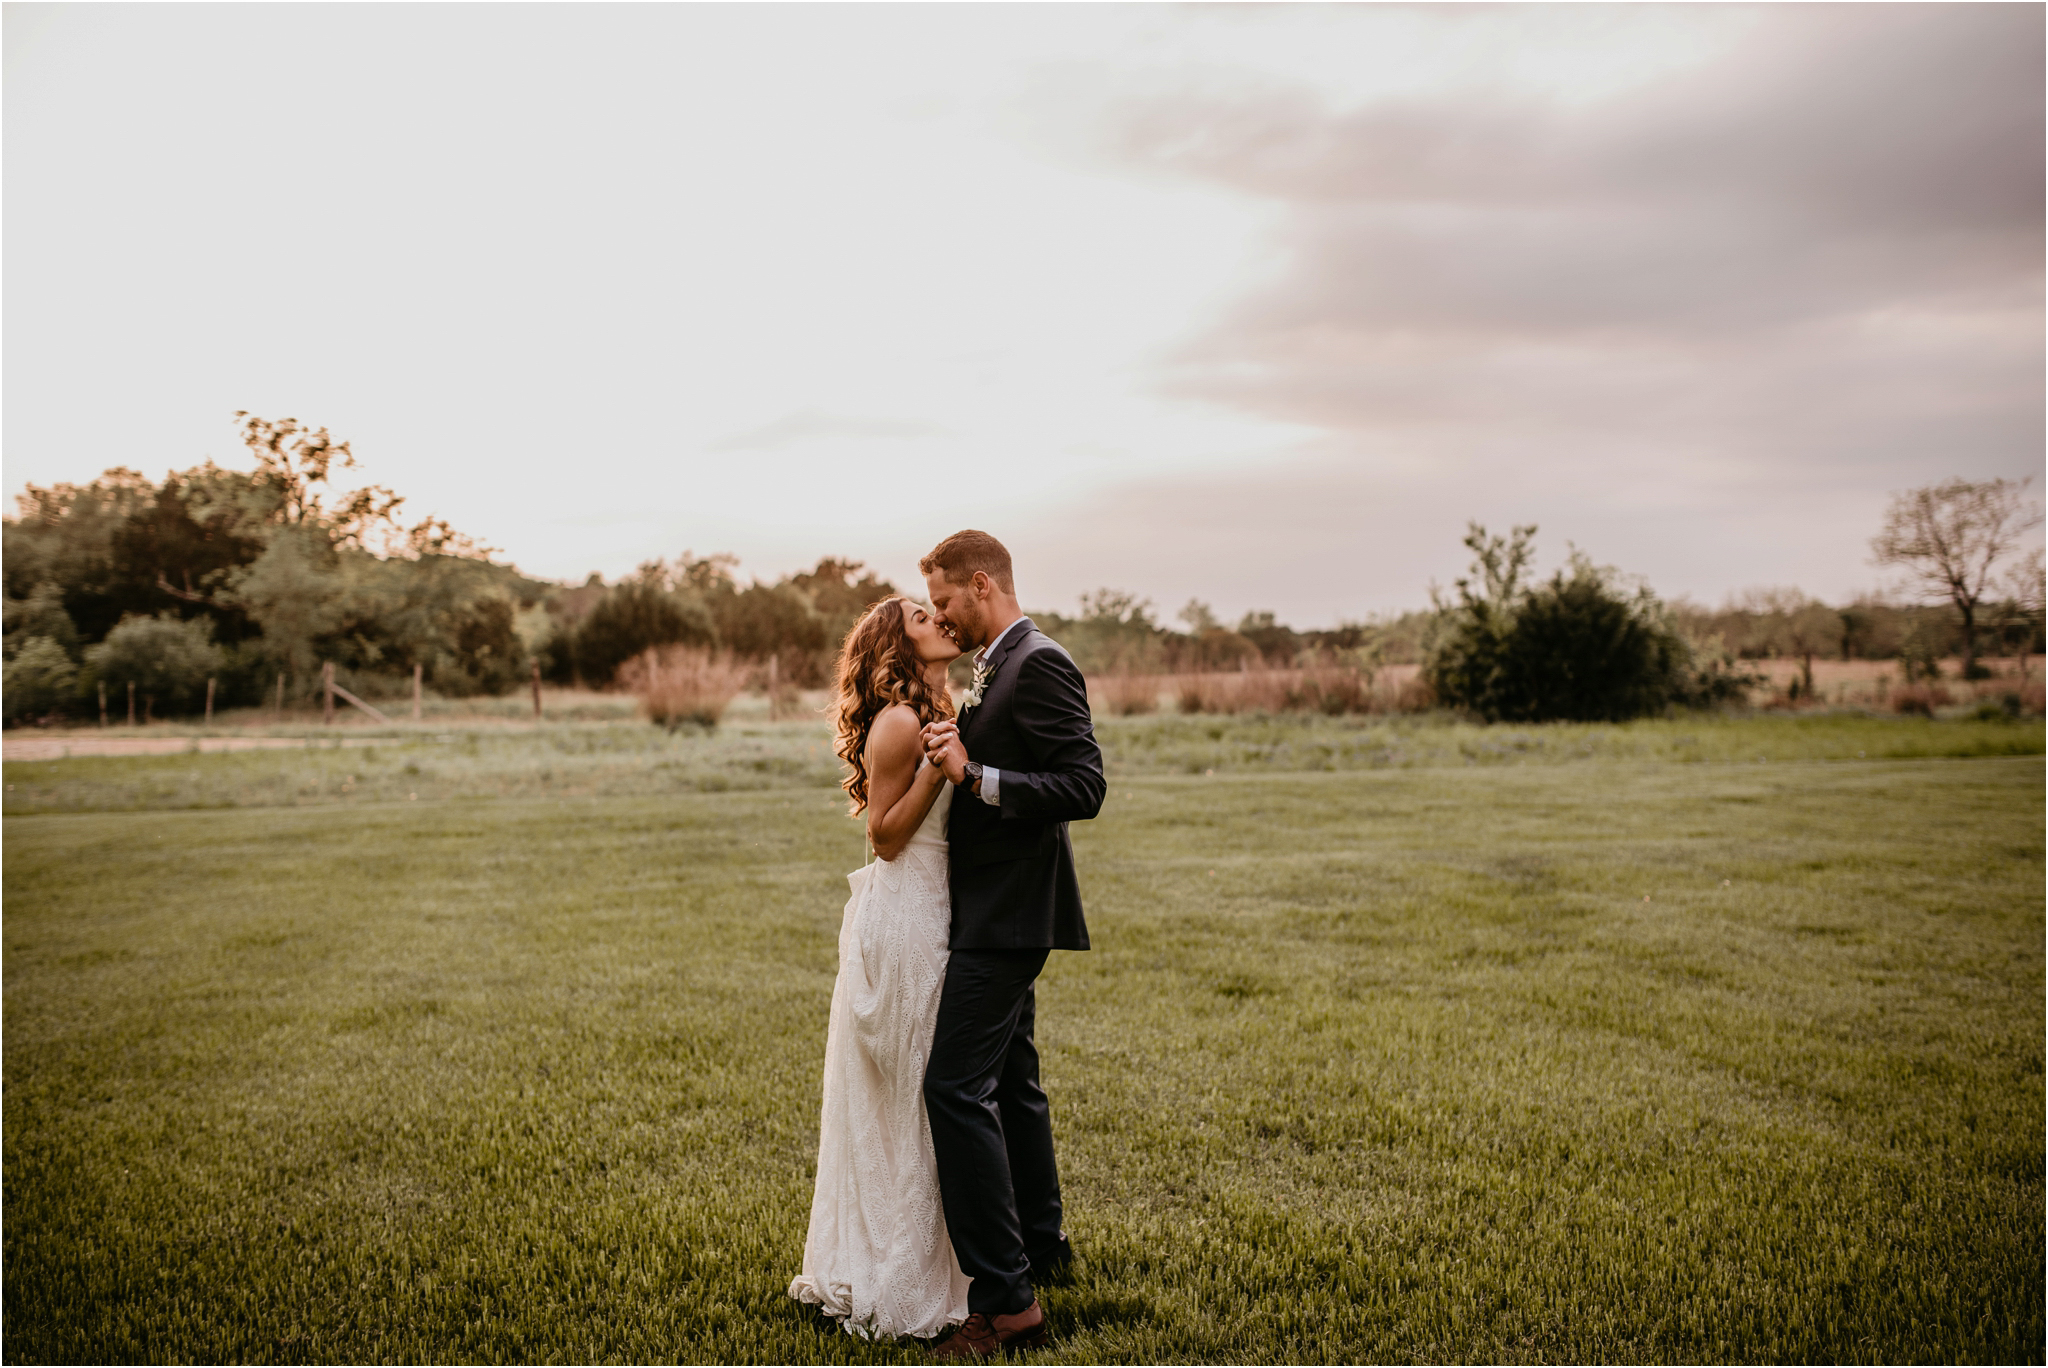 jillian-and-scott-pecan-springs-ranch-texas-and-washington-wedding-photographer-104.jpg